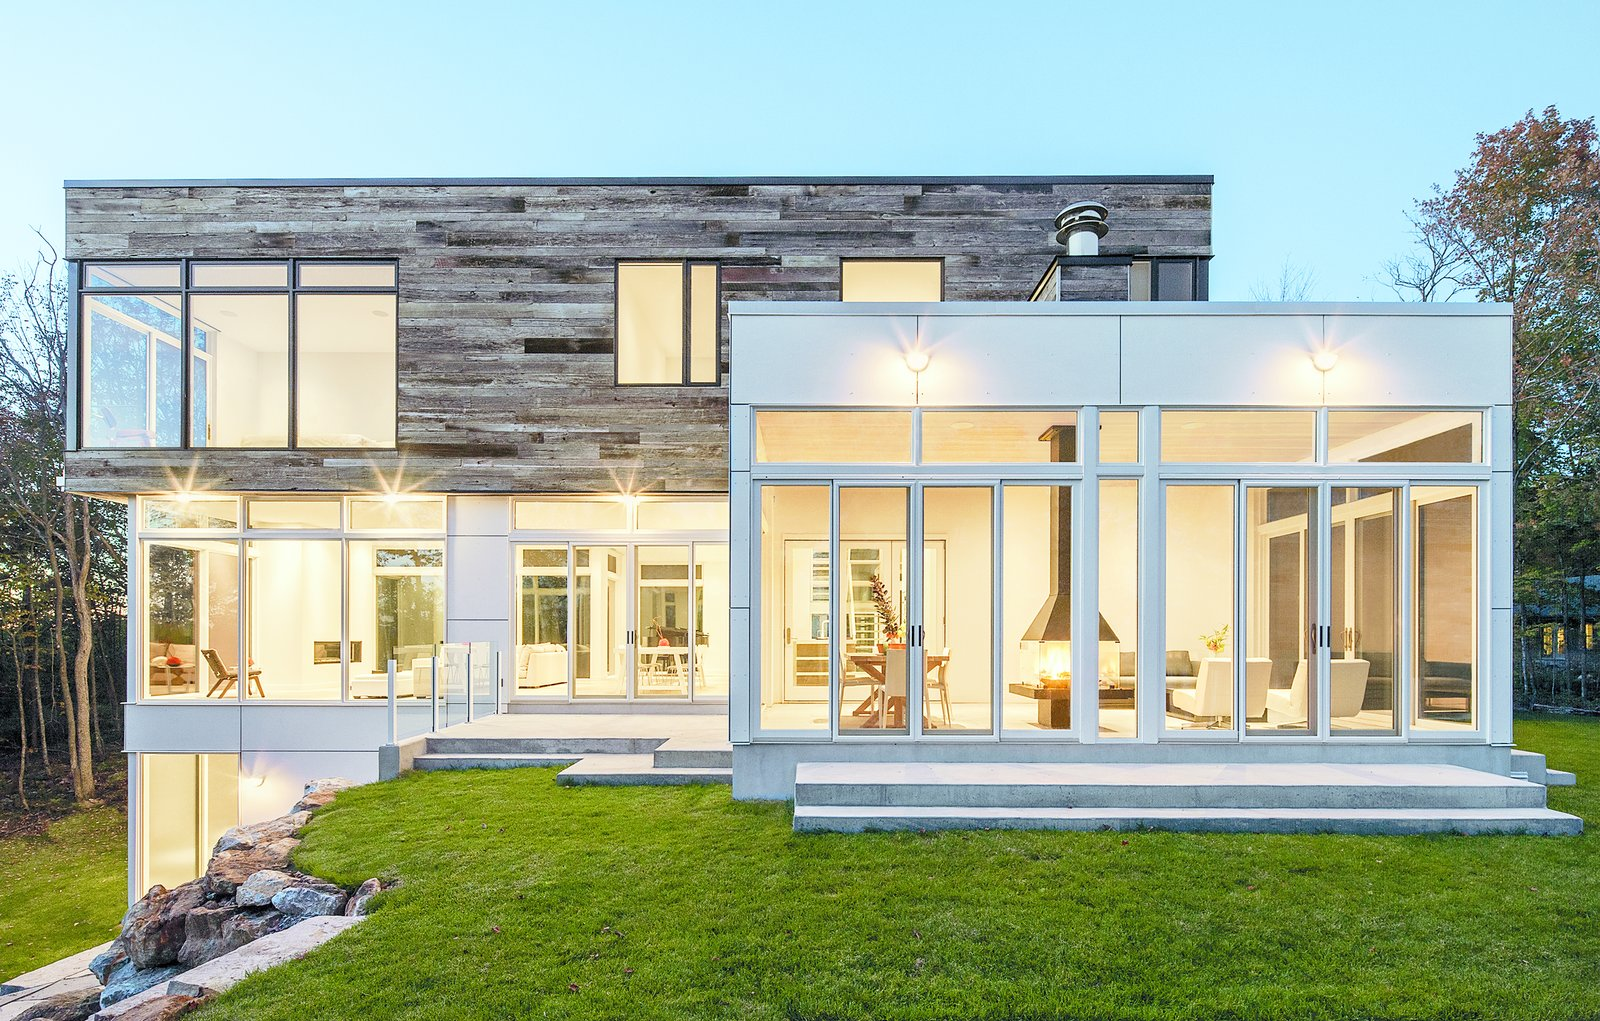 12 Striking Examples of Clerestory Windows in Modern Homes  Dwell